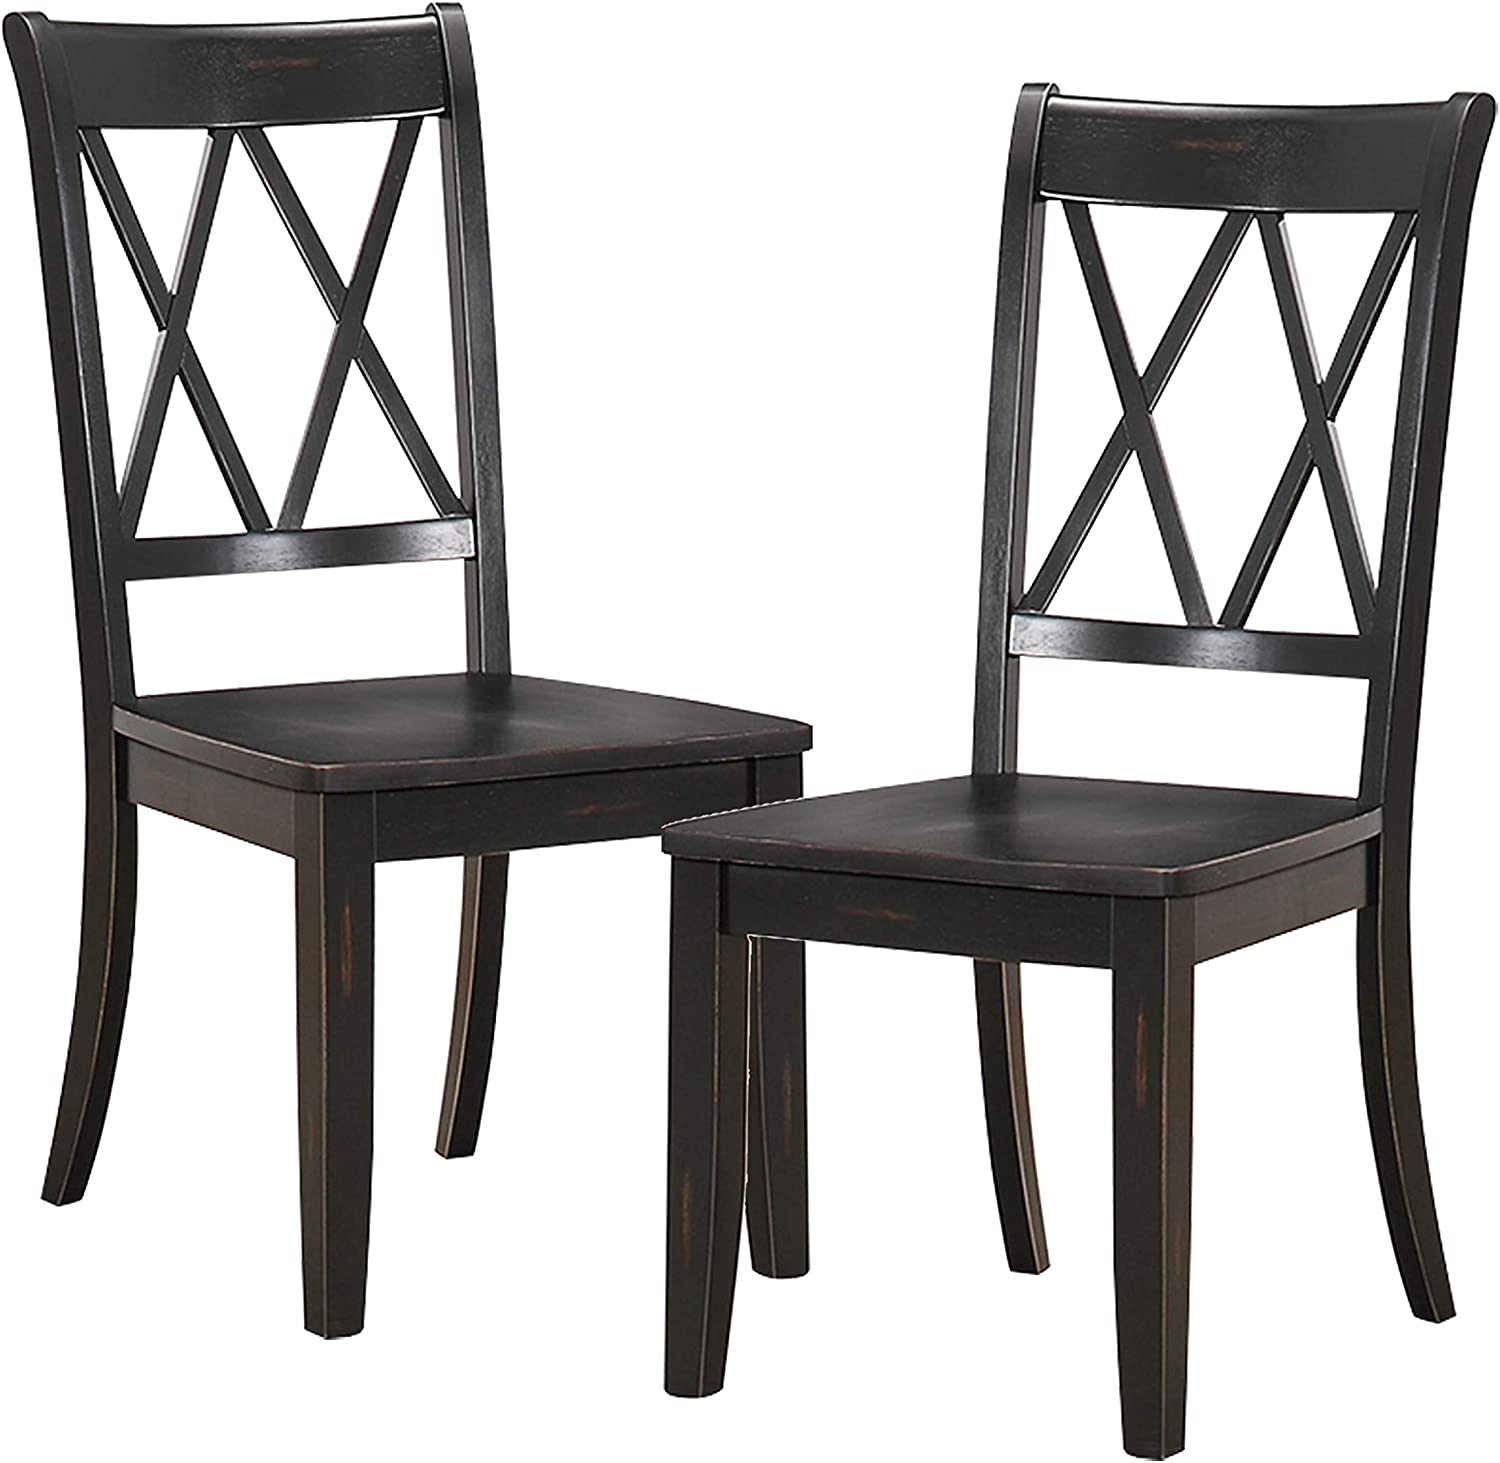 Homelegance Dining Chair (Set of 2), Black